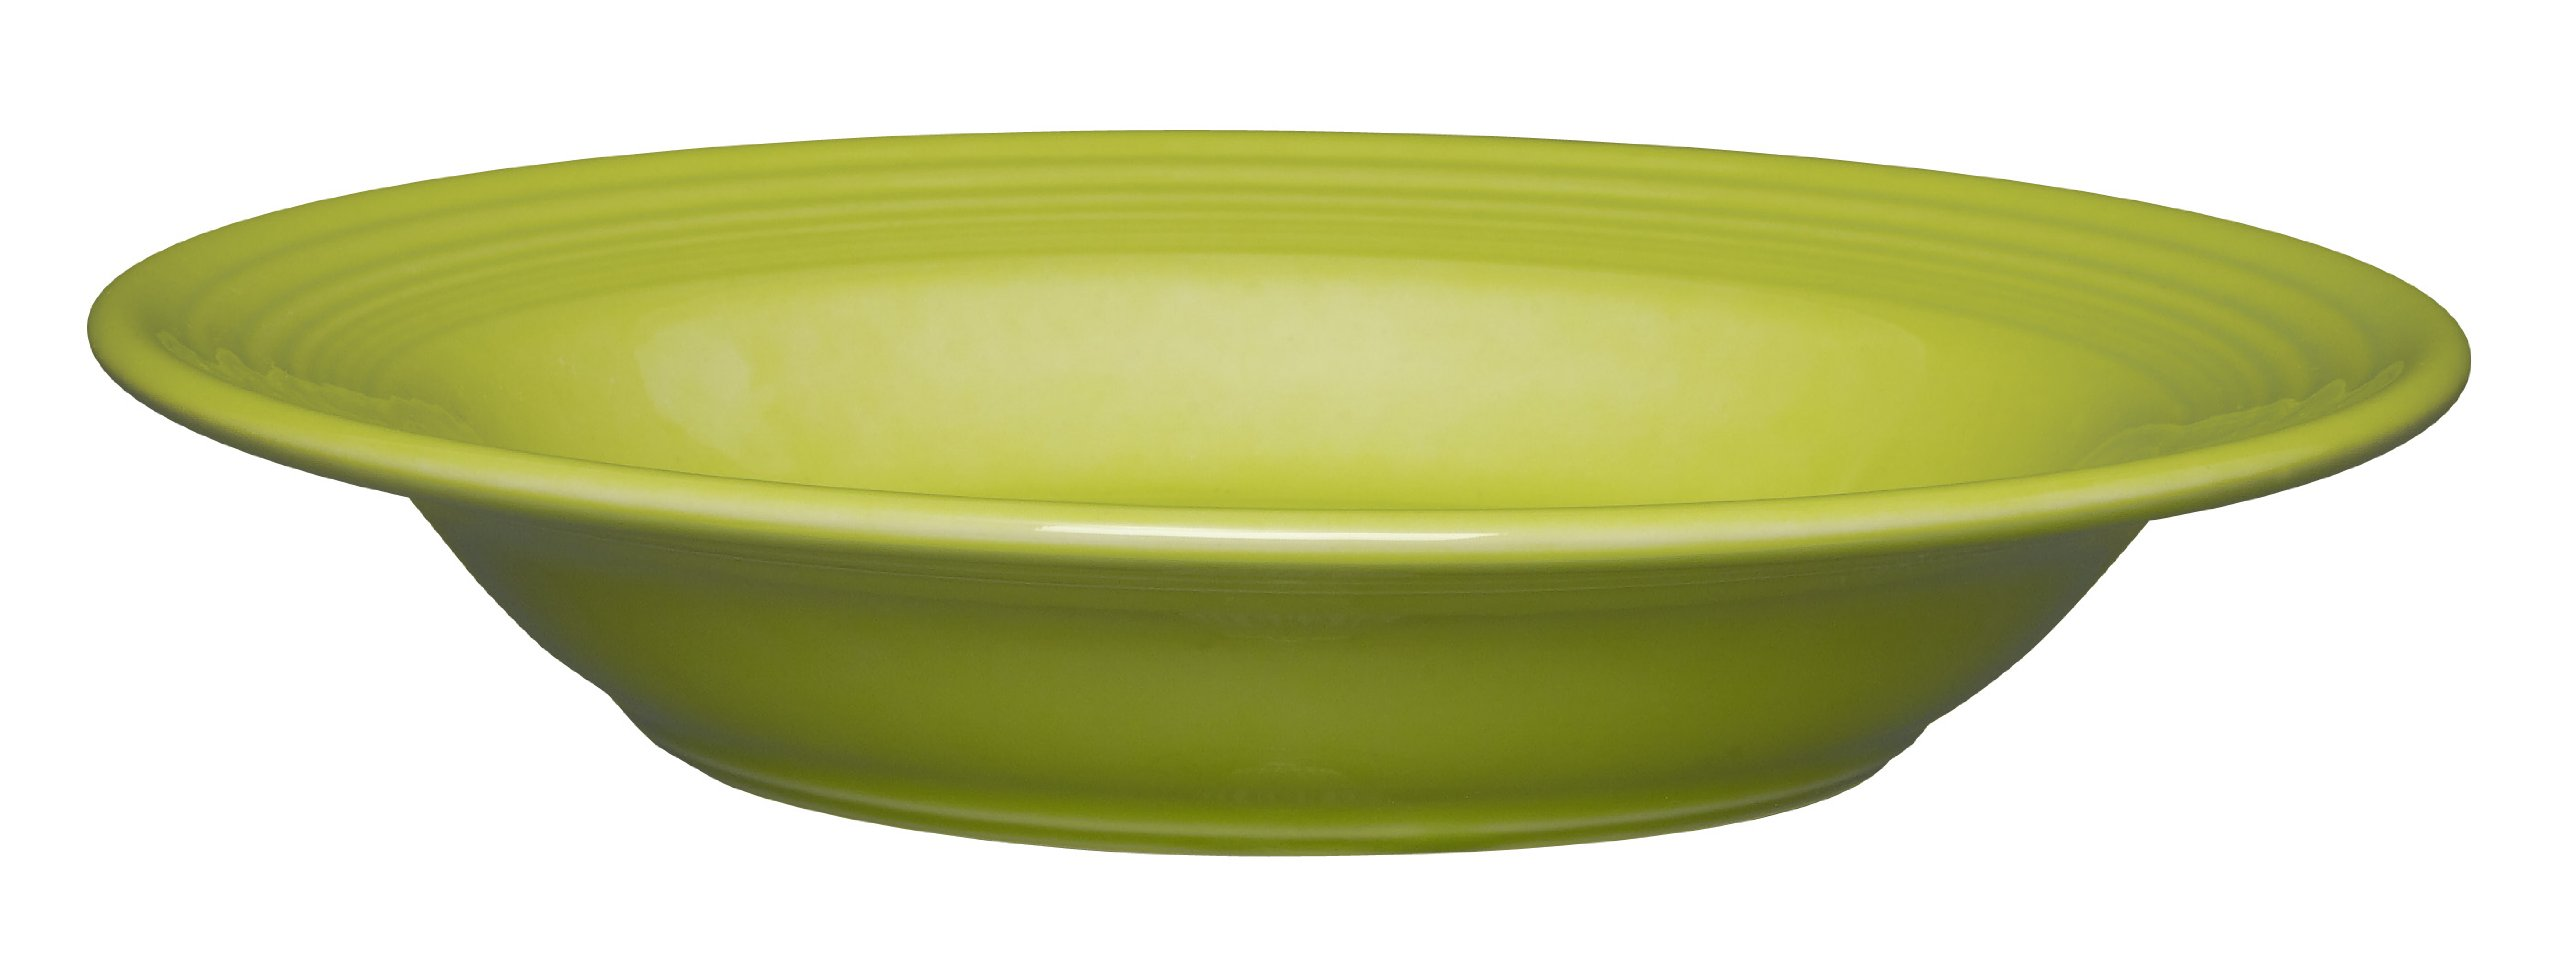 Fiesta 9-Inch Rim Soup Bowl, 13-1/4-Ounce, Lemongrass